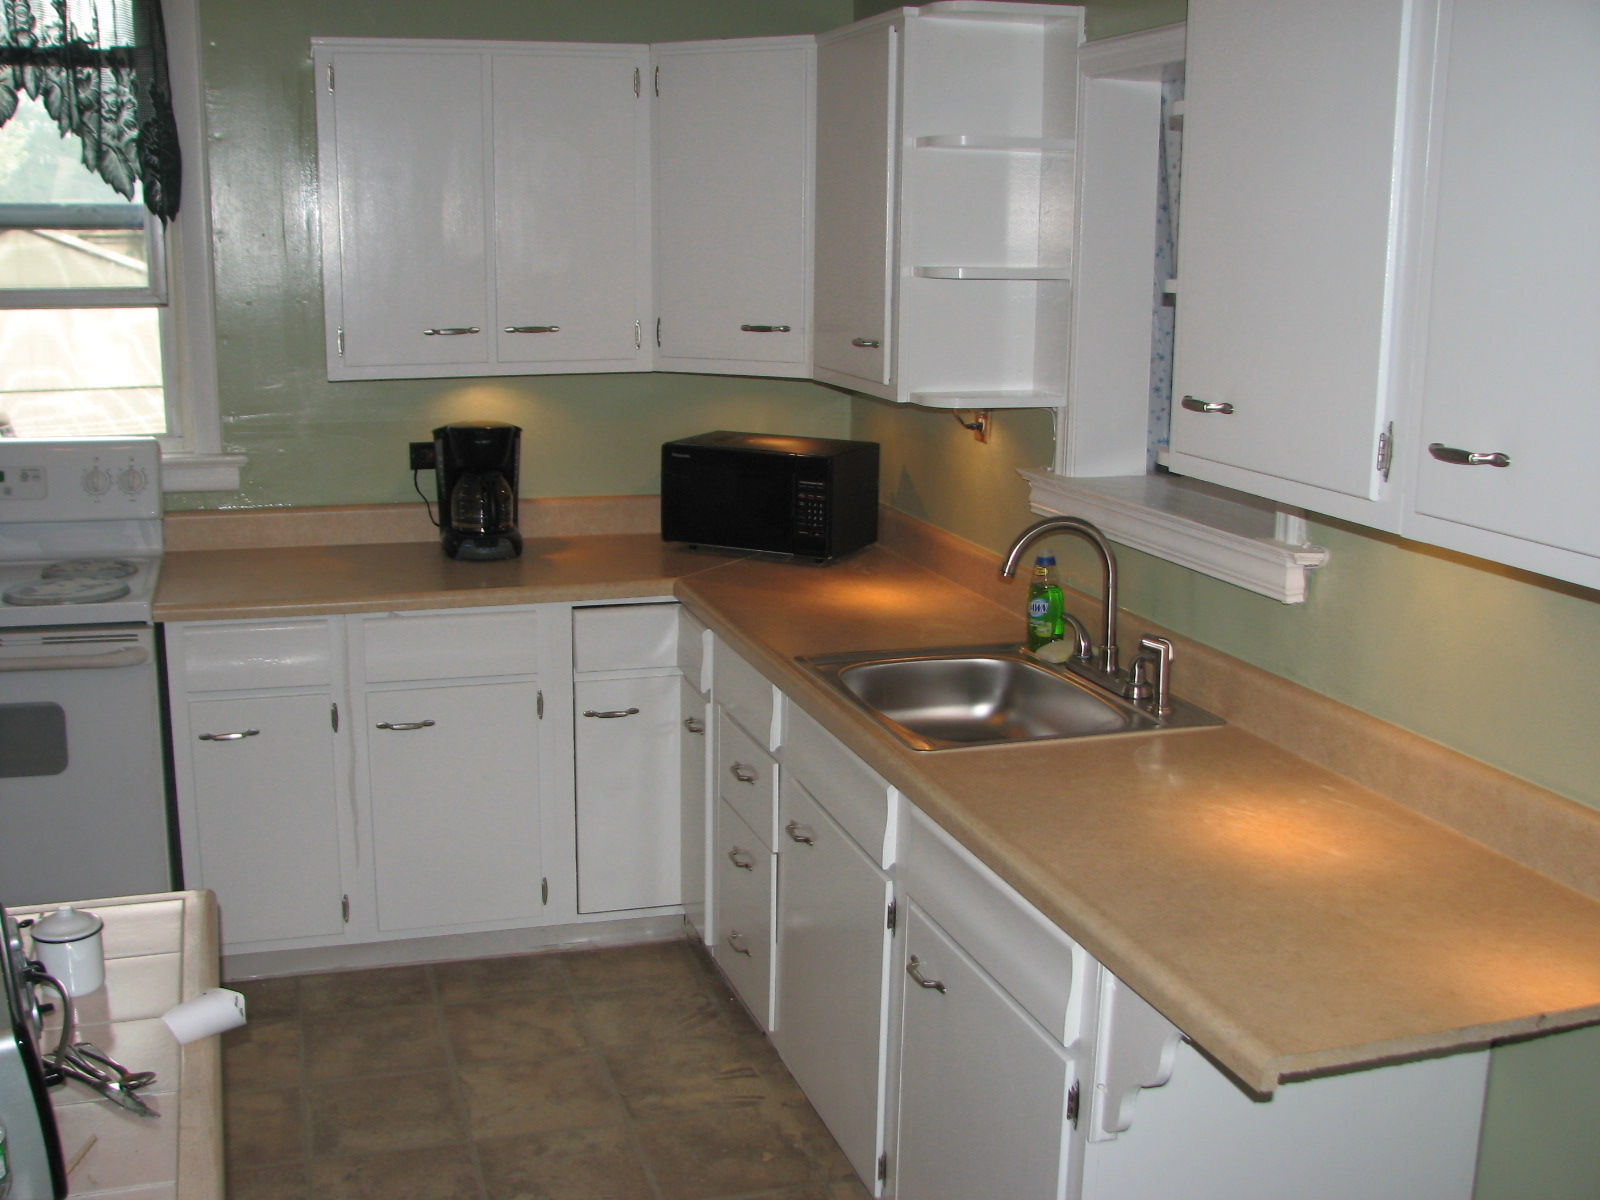 10x10 kitchen remodel cost ezr degreaser remodels before and after pthyd